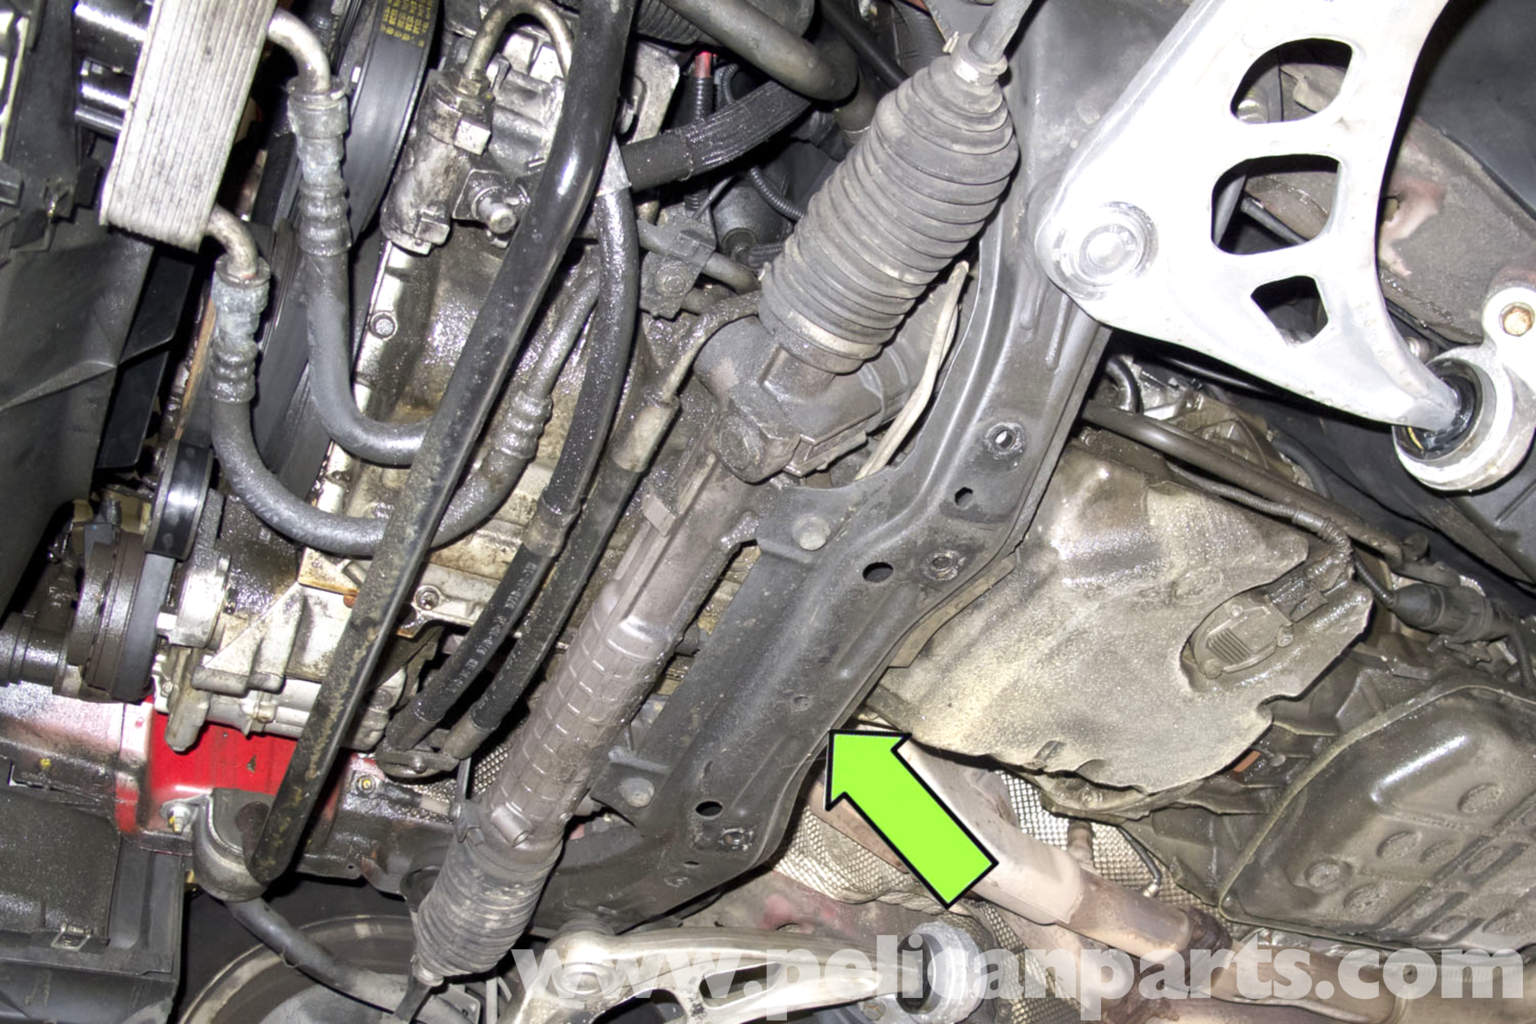 Service Manual Diy Oil Pan Replacement On A 2001 Bmw Z3